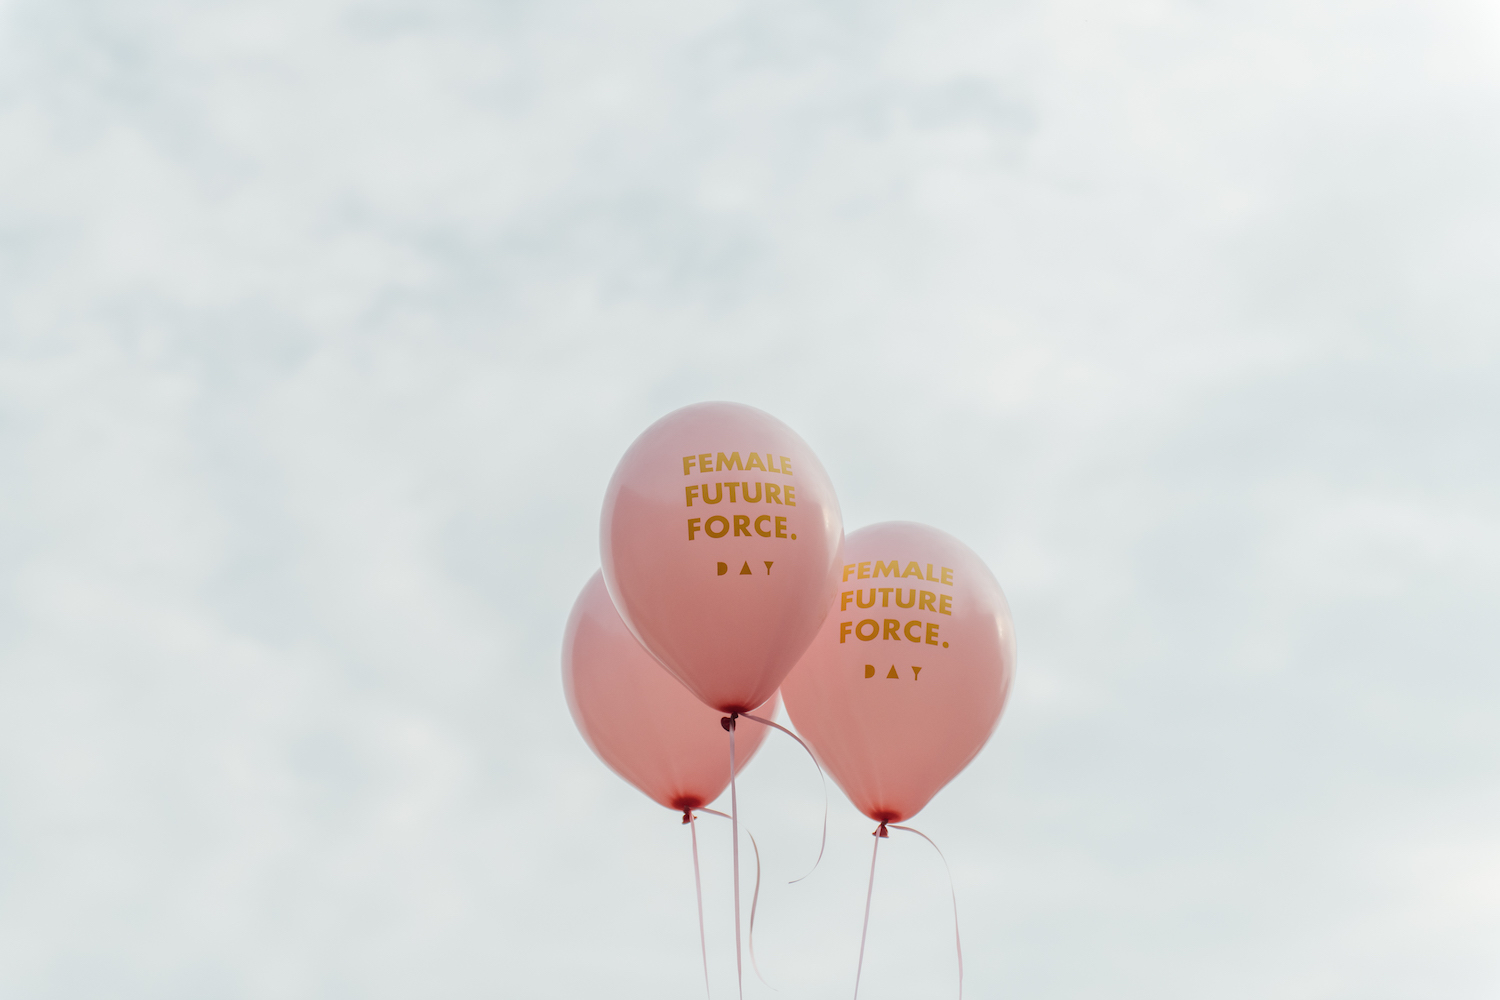 Ballons mit dem Female Future Force Day Logo